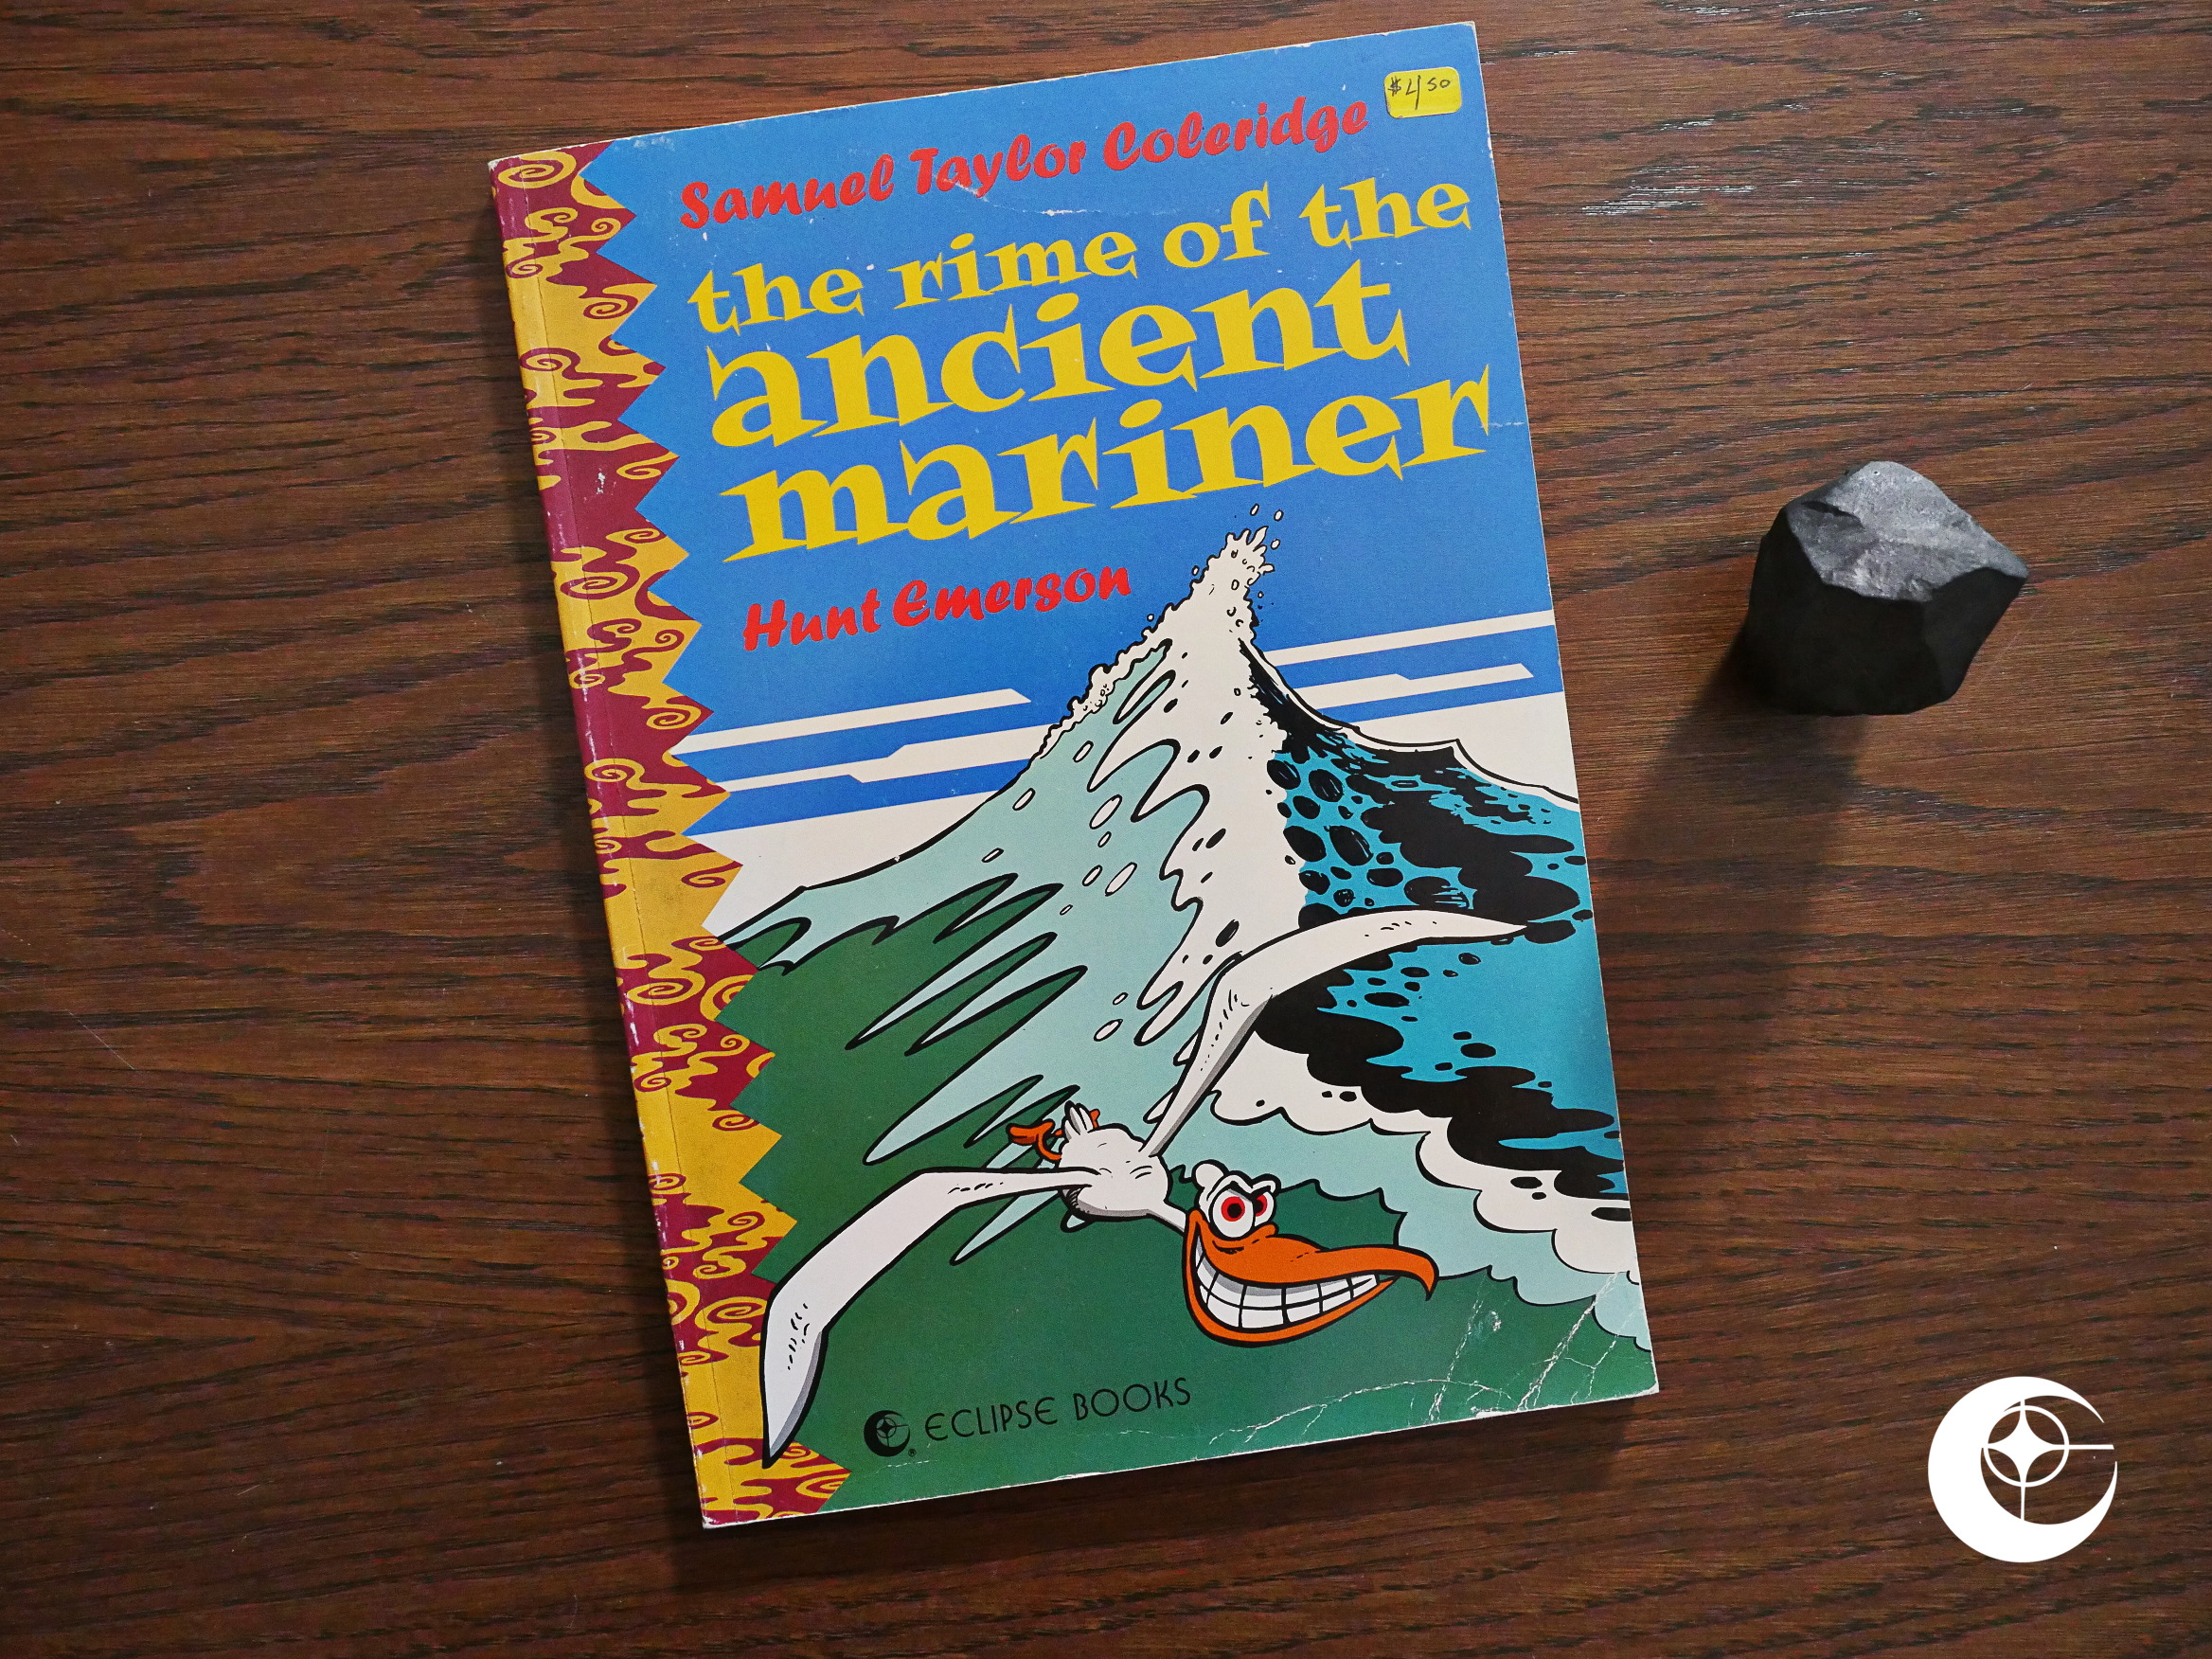 1989 The Rime Of The Ancient Mariner Total Eclipse